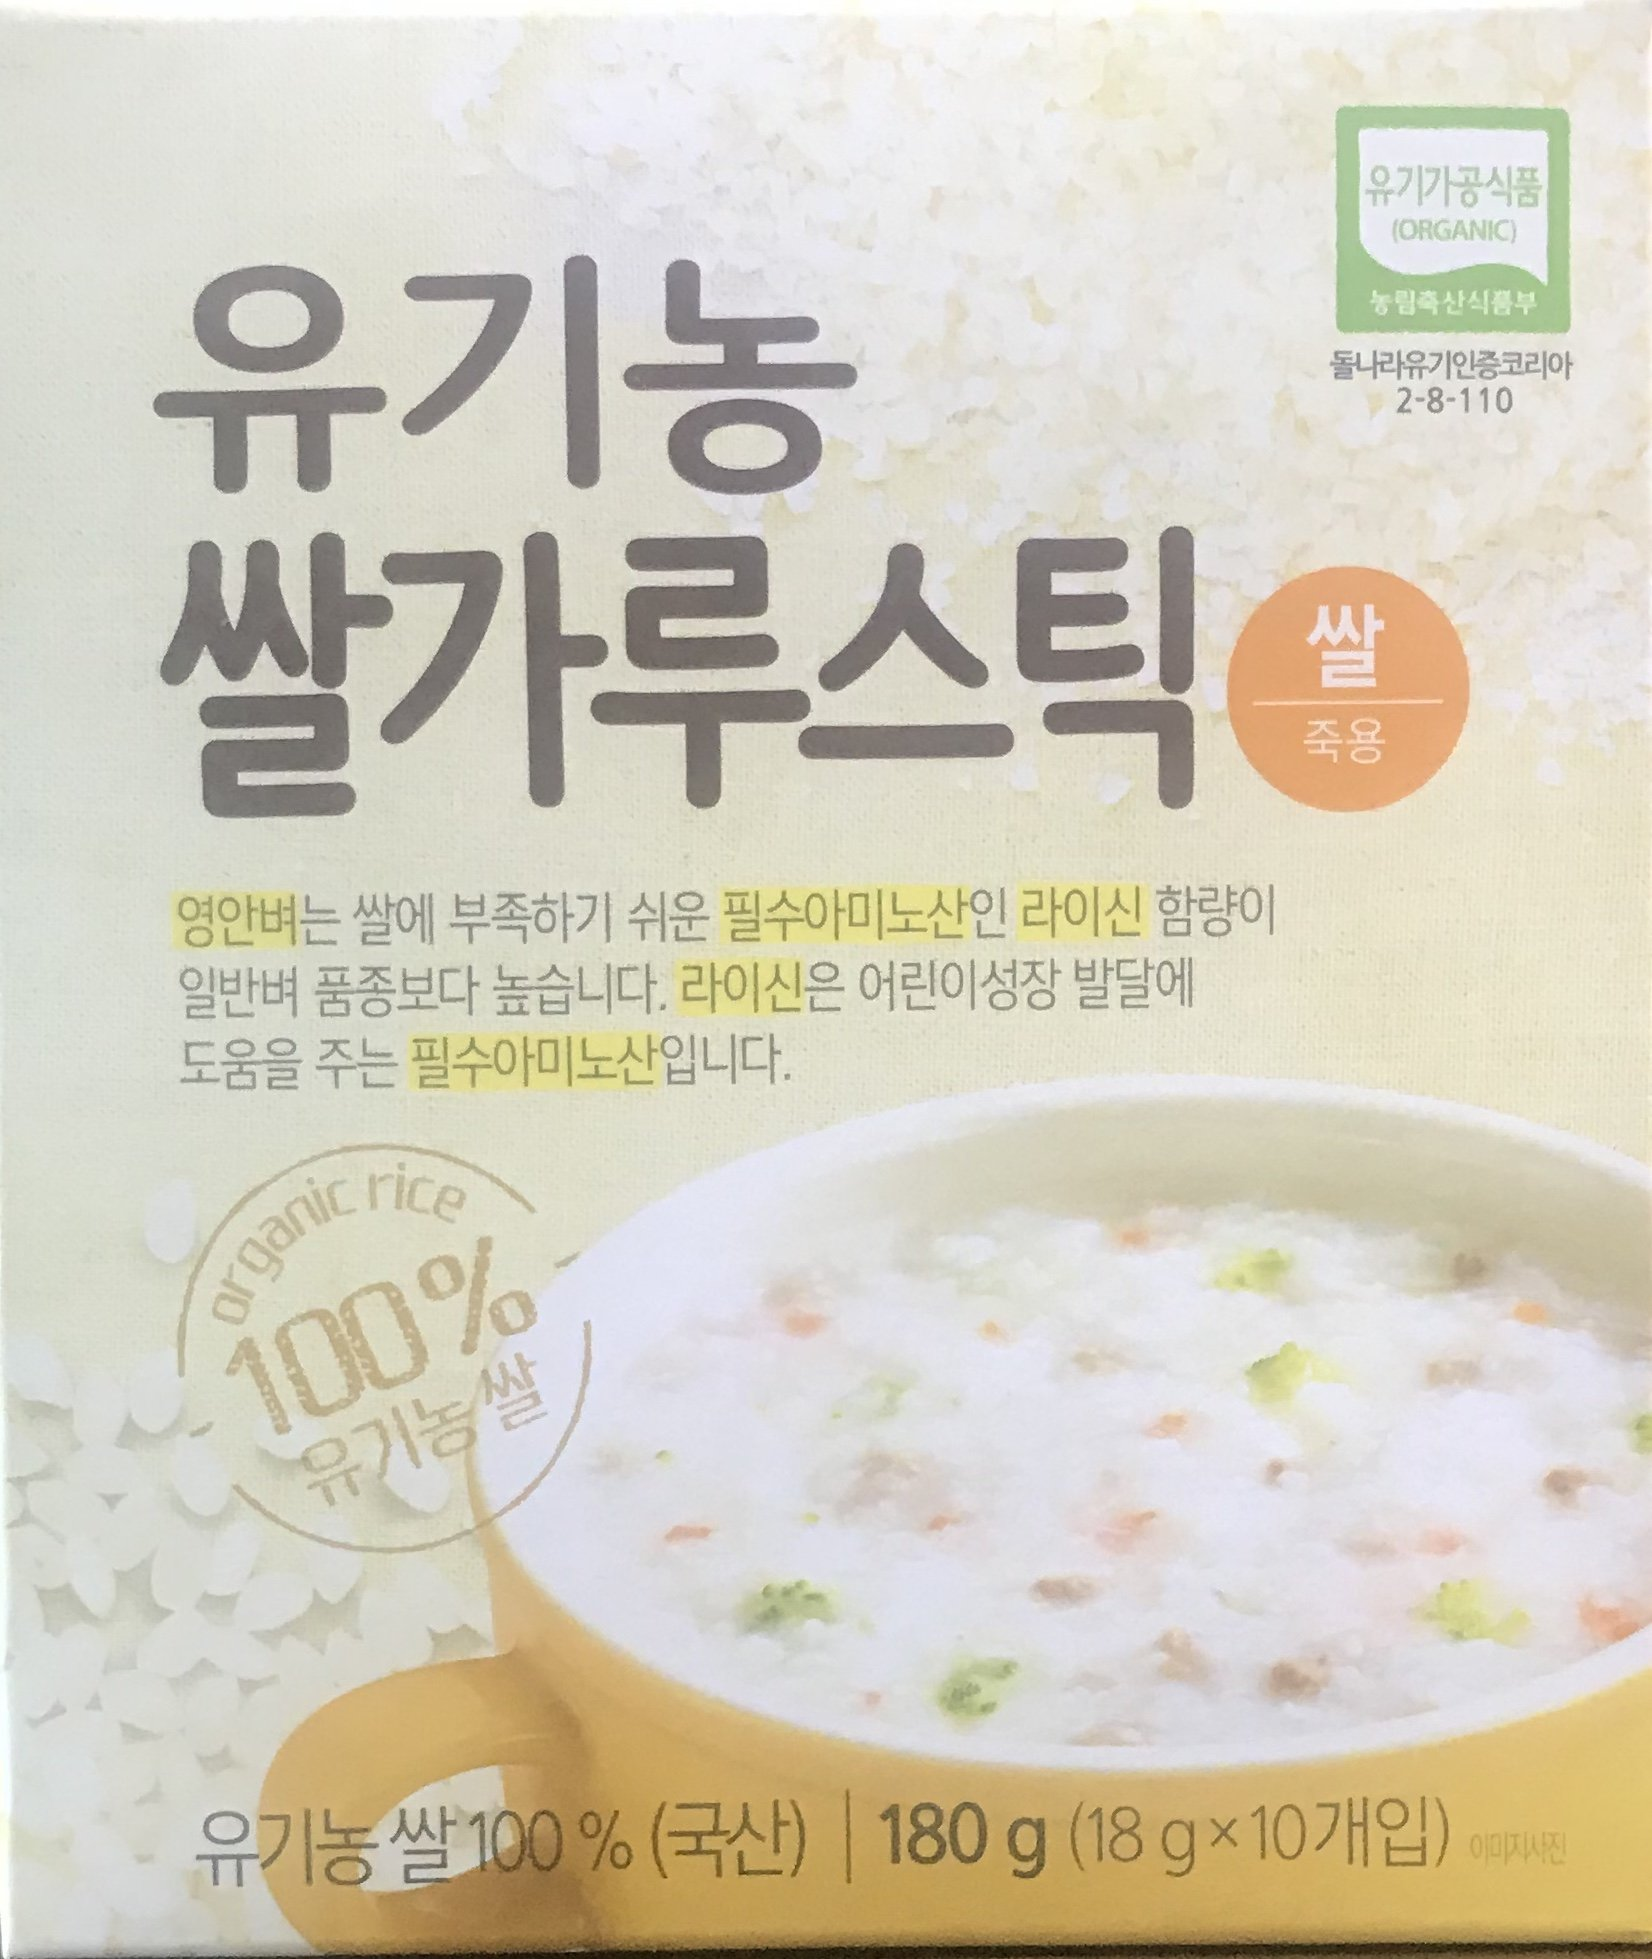 Organic rice powder (suitable for 7 months old and over)